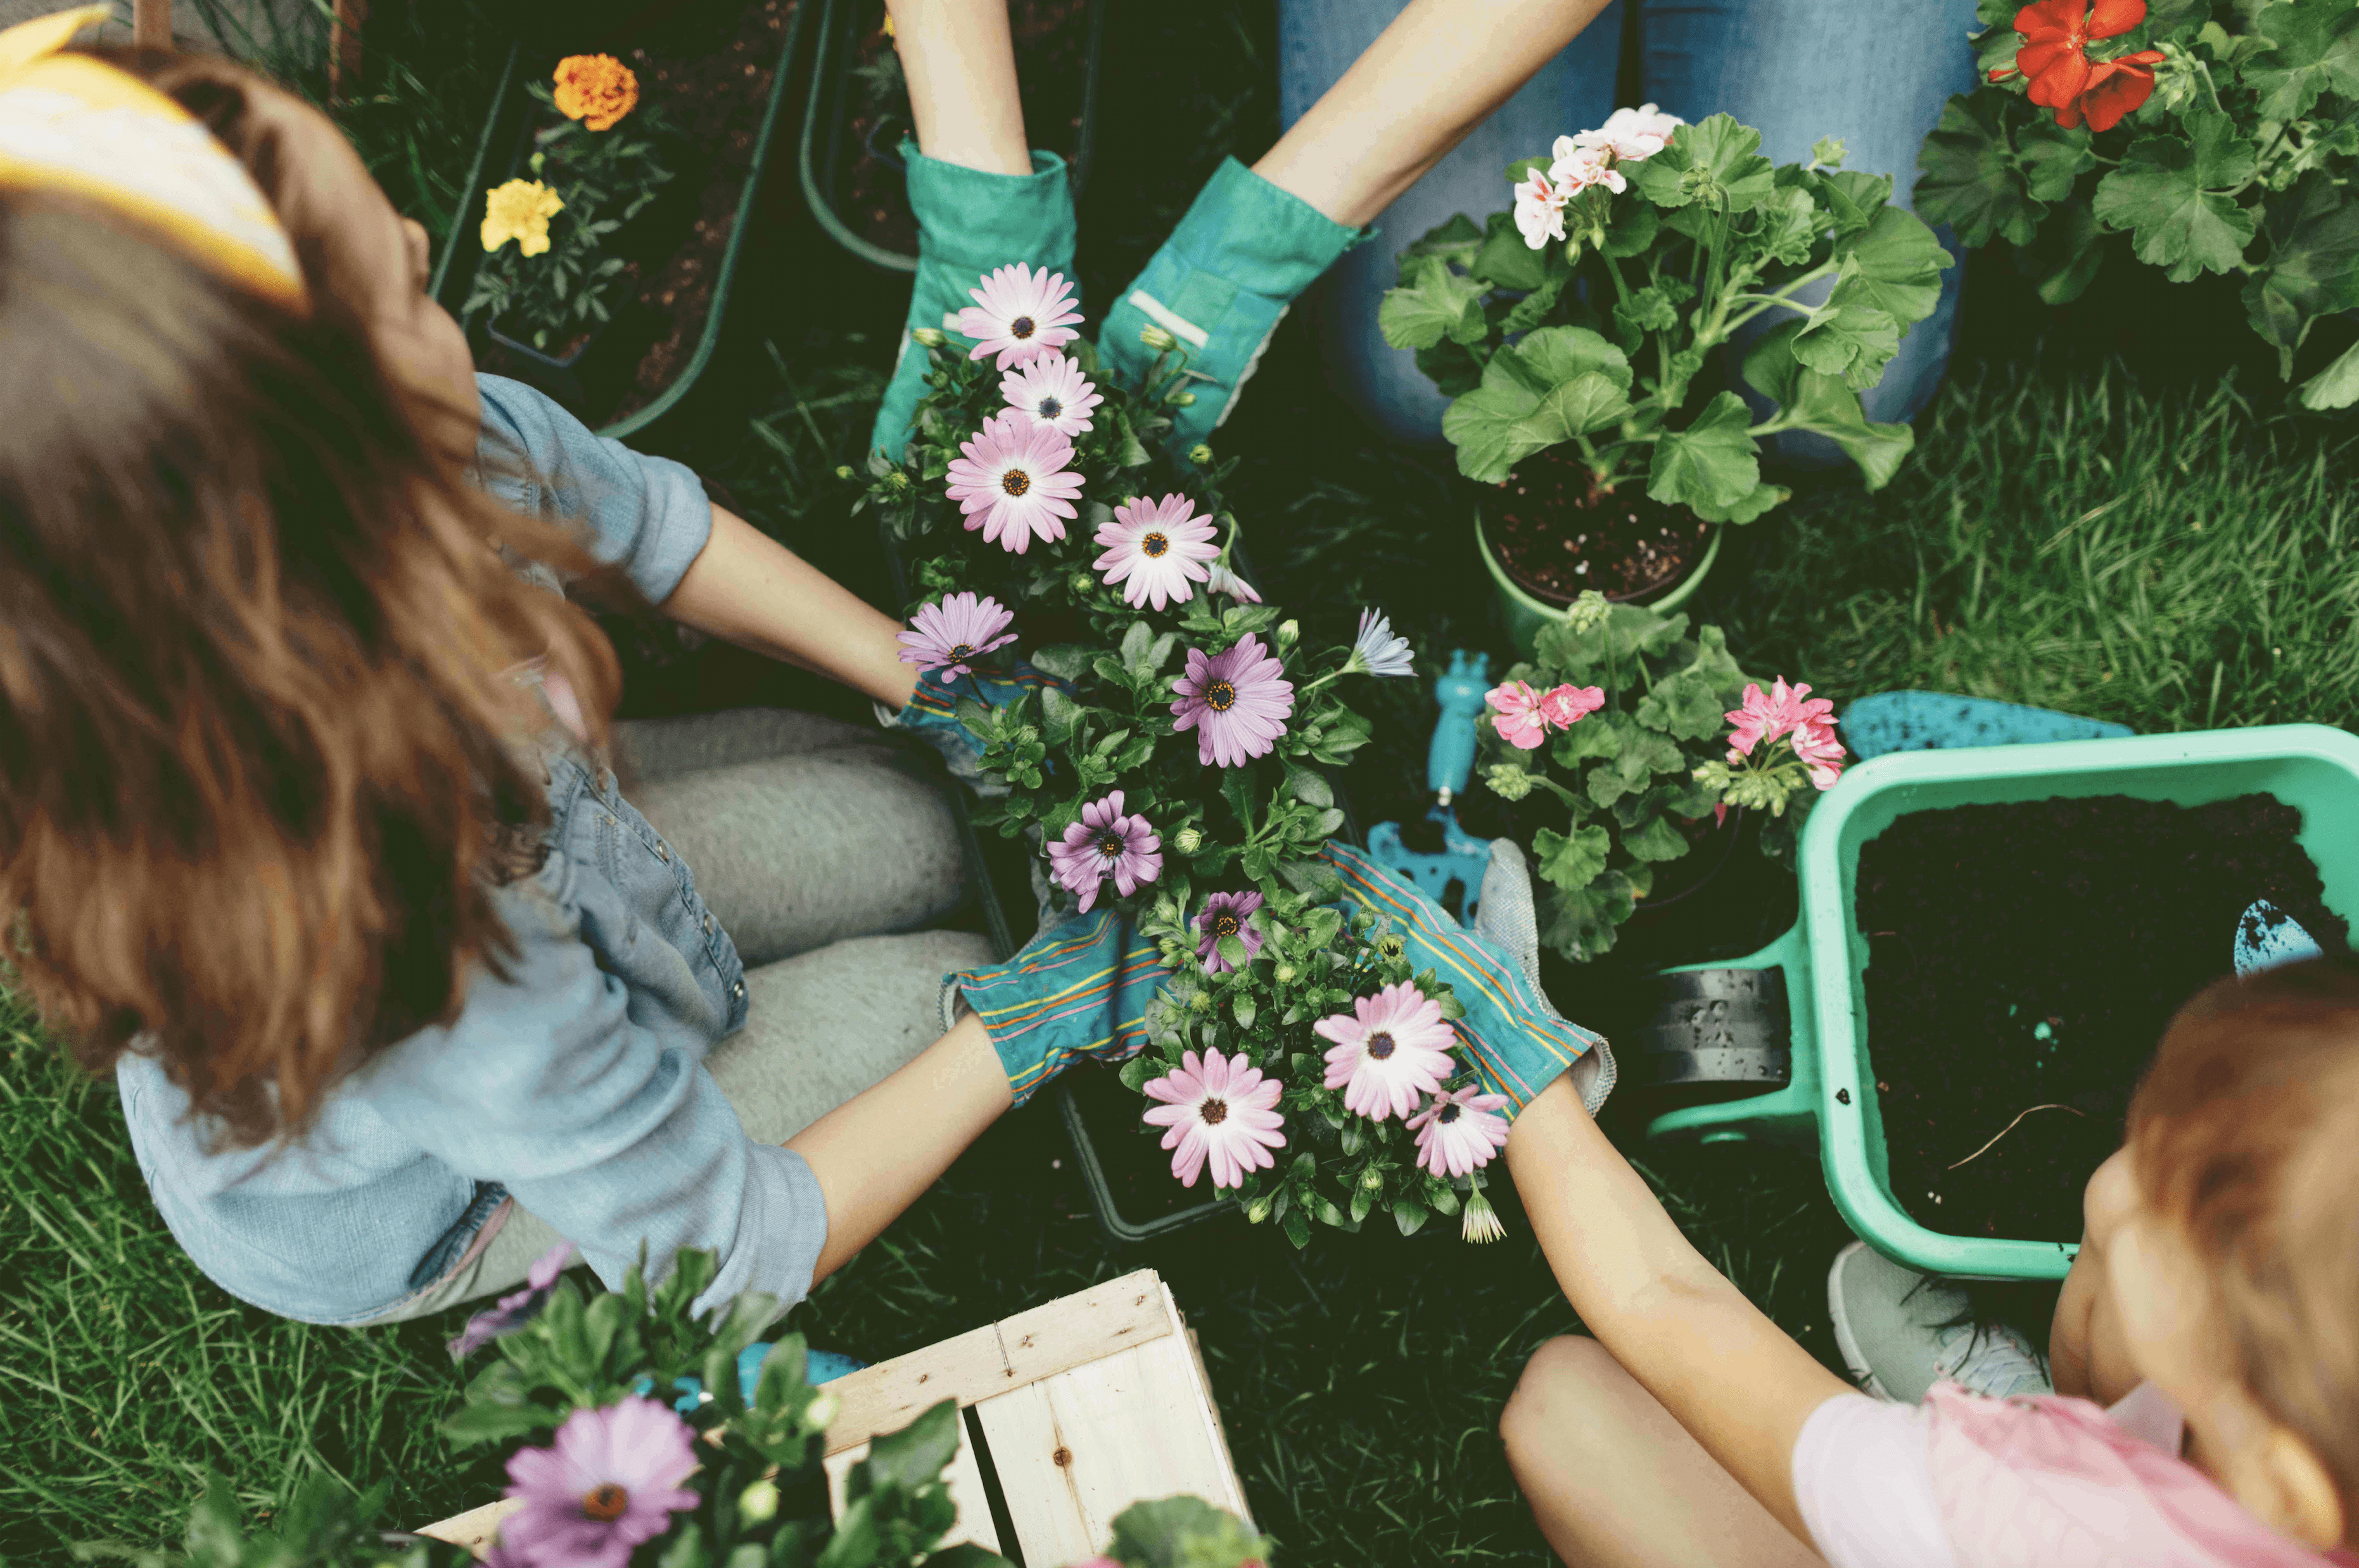 7 Gardening Tips and Tricks for Beginners